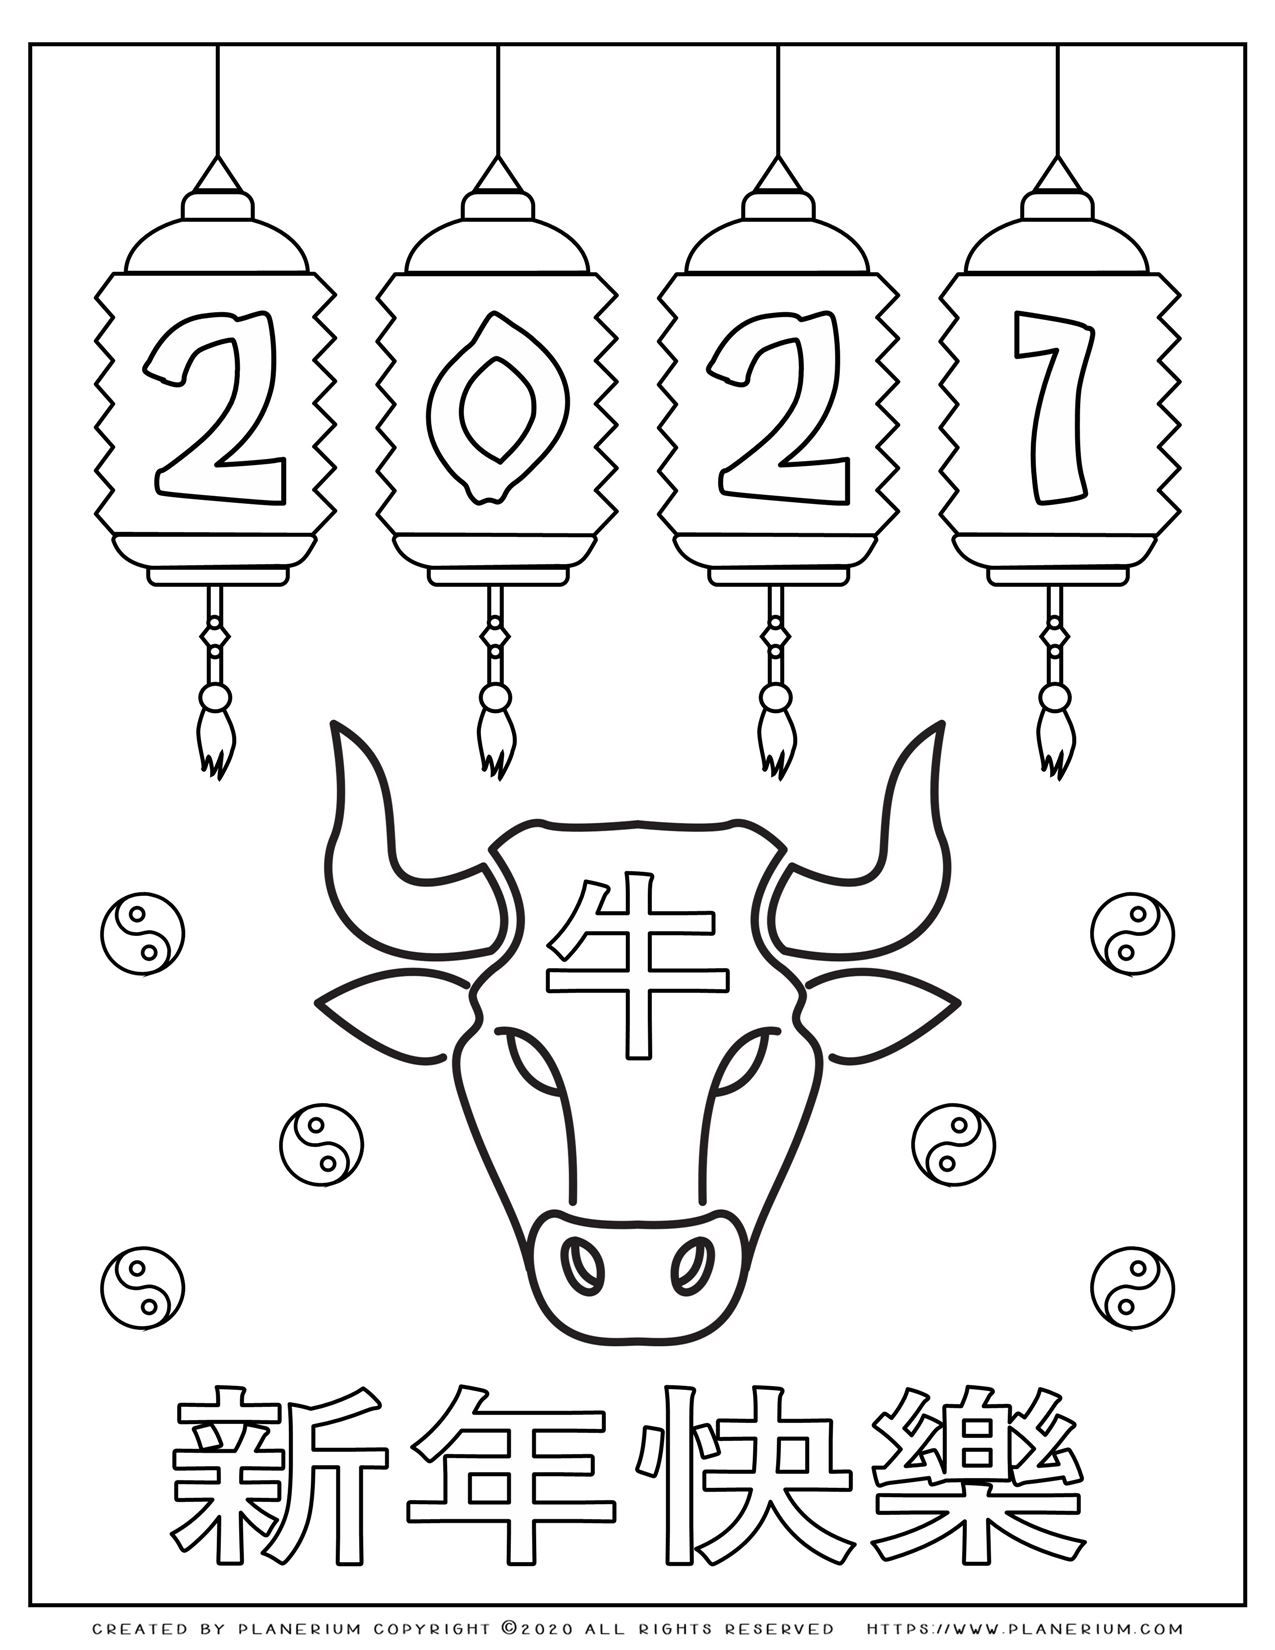 Happy Chinese New Year 2021 Free Coloring Page Planerium In 2021 New Year Coloring Pages Chinese New Year Activities Chinese New Year Crafts